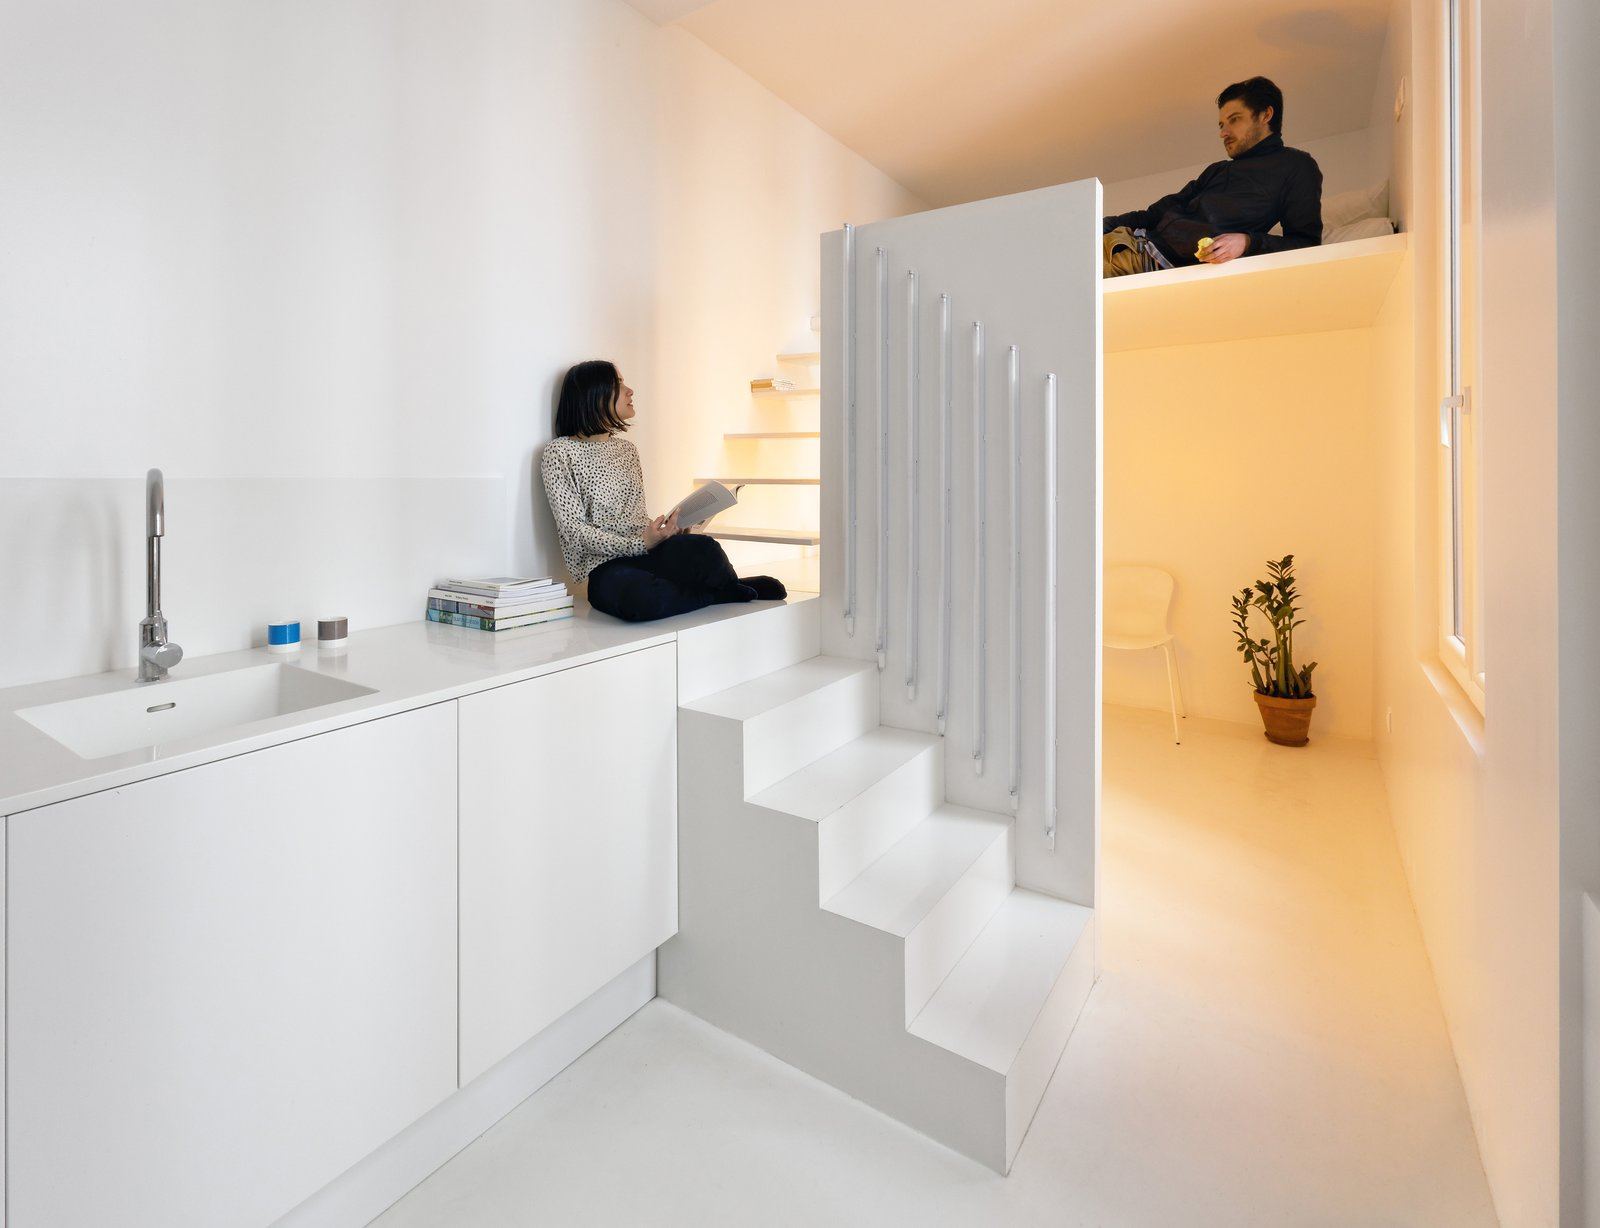 Appartement Spectral pp 24-25 Raphael Betillon Architects  Photo 1 of 15 in Gestalten's New Book Shows How to Transform Small Spaces Into Design Marvels